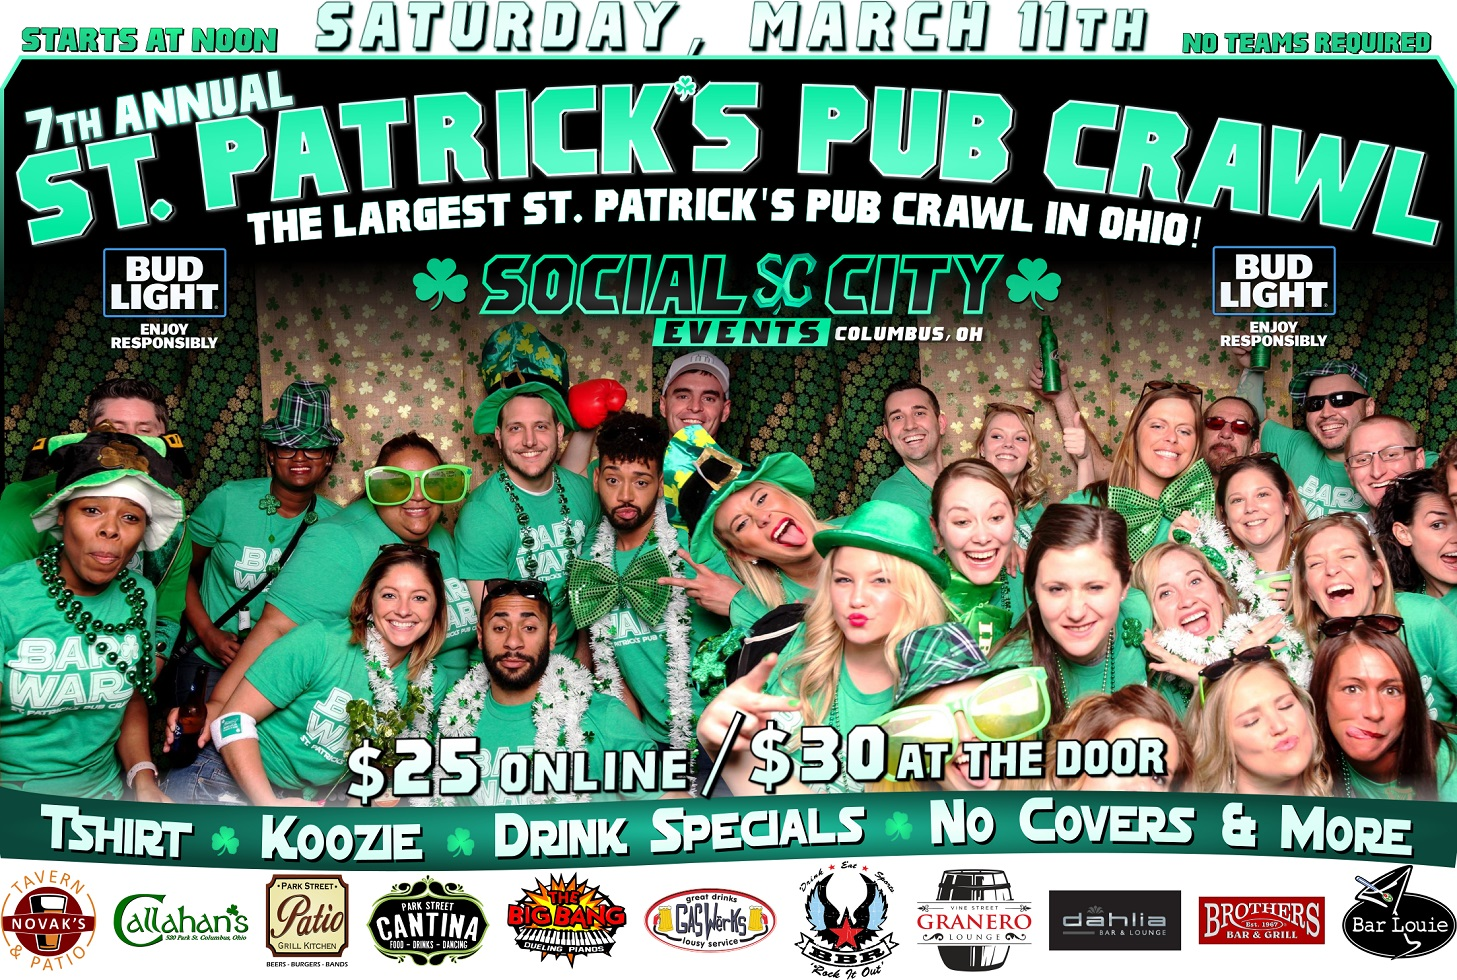 Social City Events 7th Annual St. Patrick's Pub Crawl